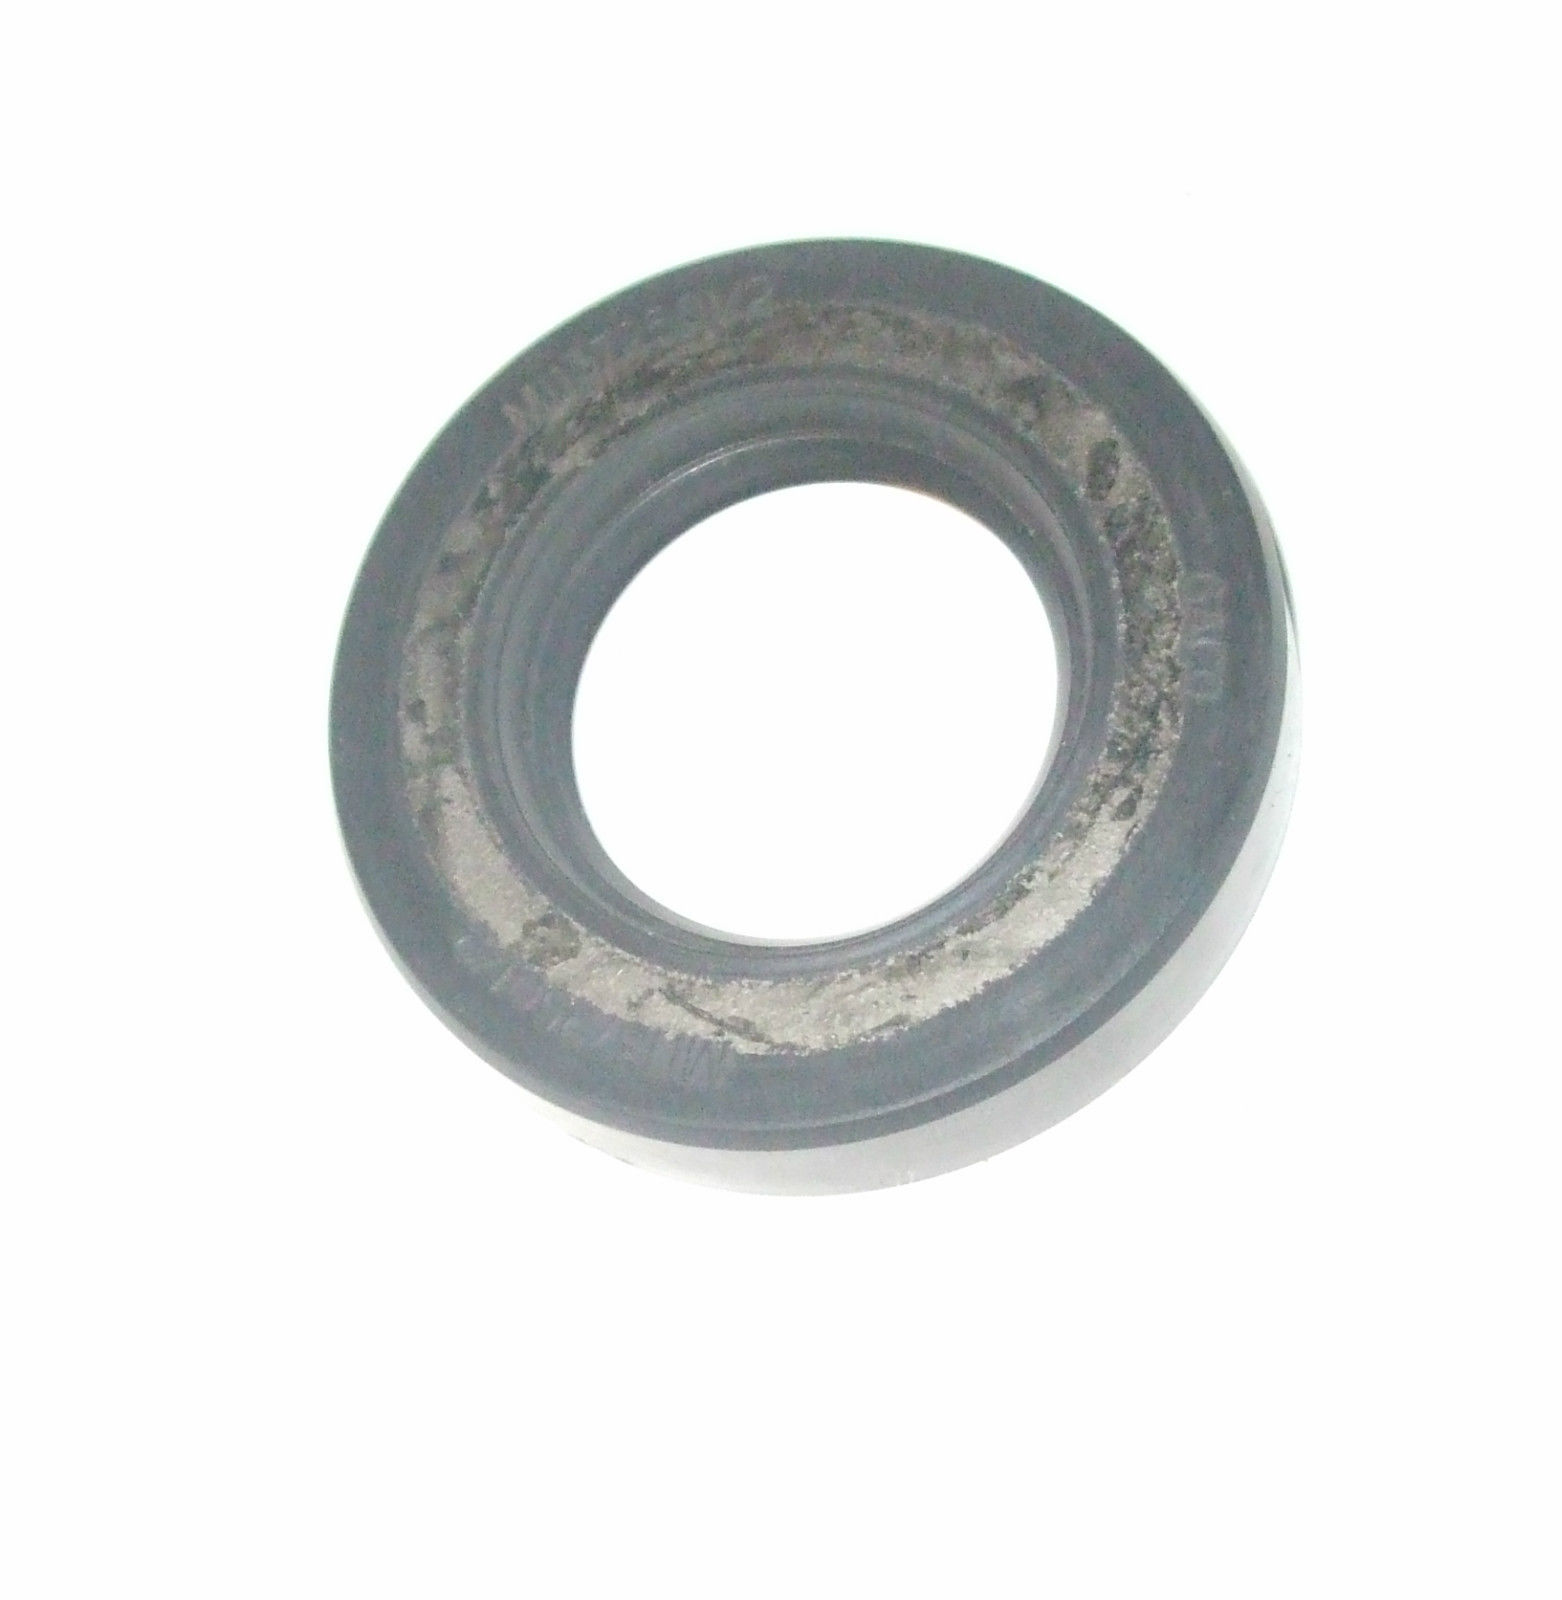 GEARBOX EXTENSION REAR OIL SEAL x1 (MG A) (From 1959- 62)